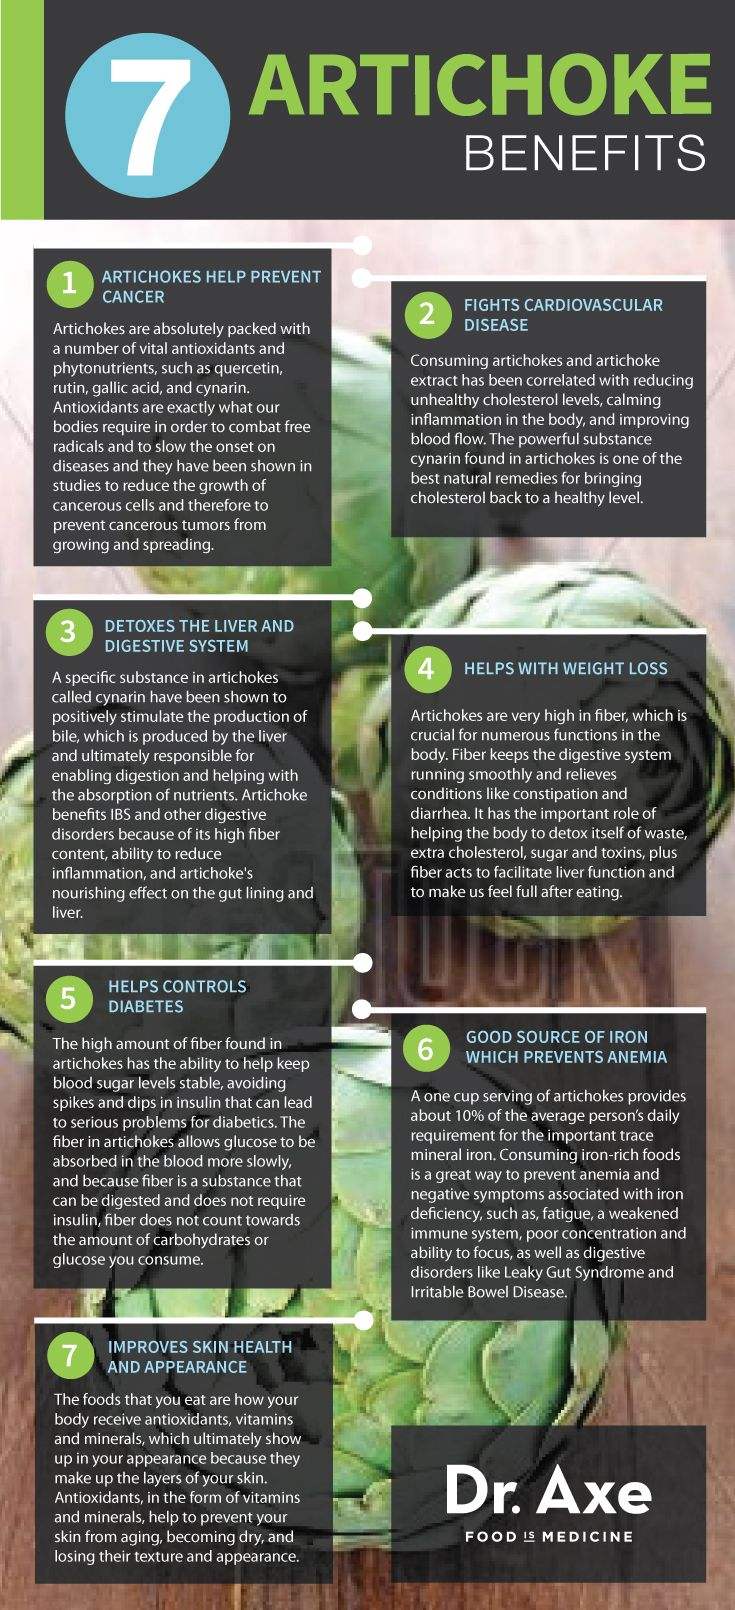 Artichoke Benefits, Recipes & Nutrition Facts